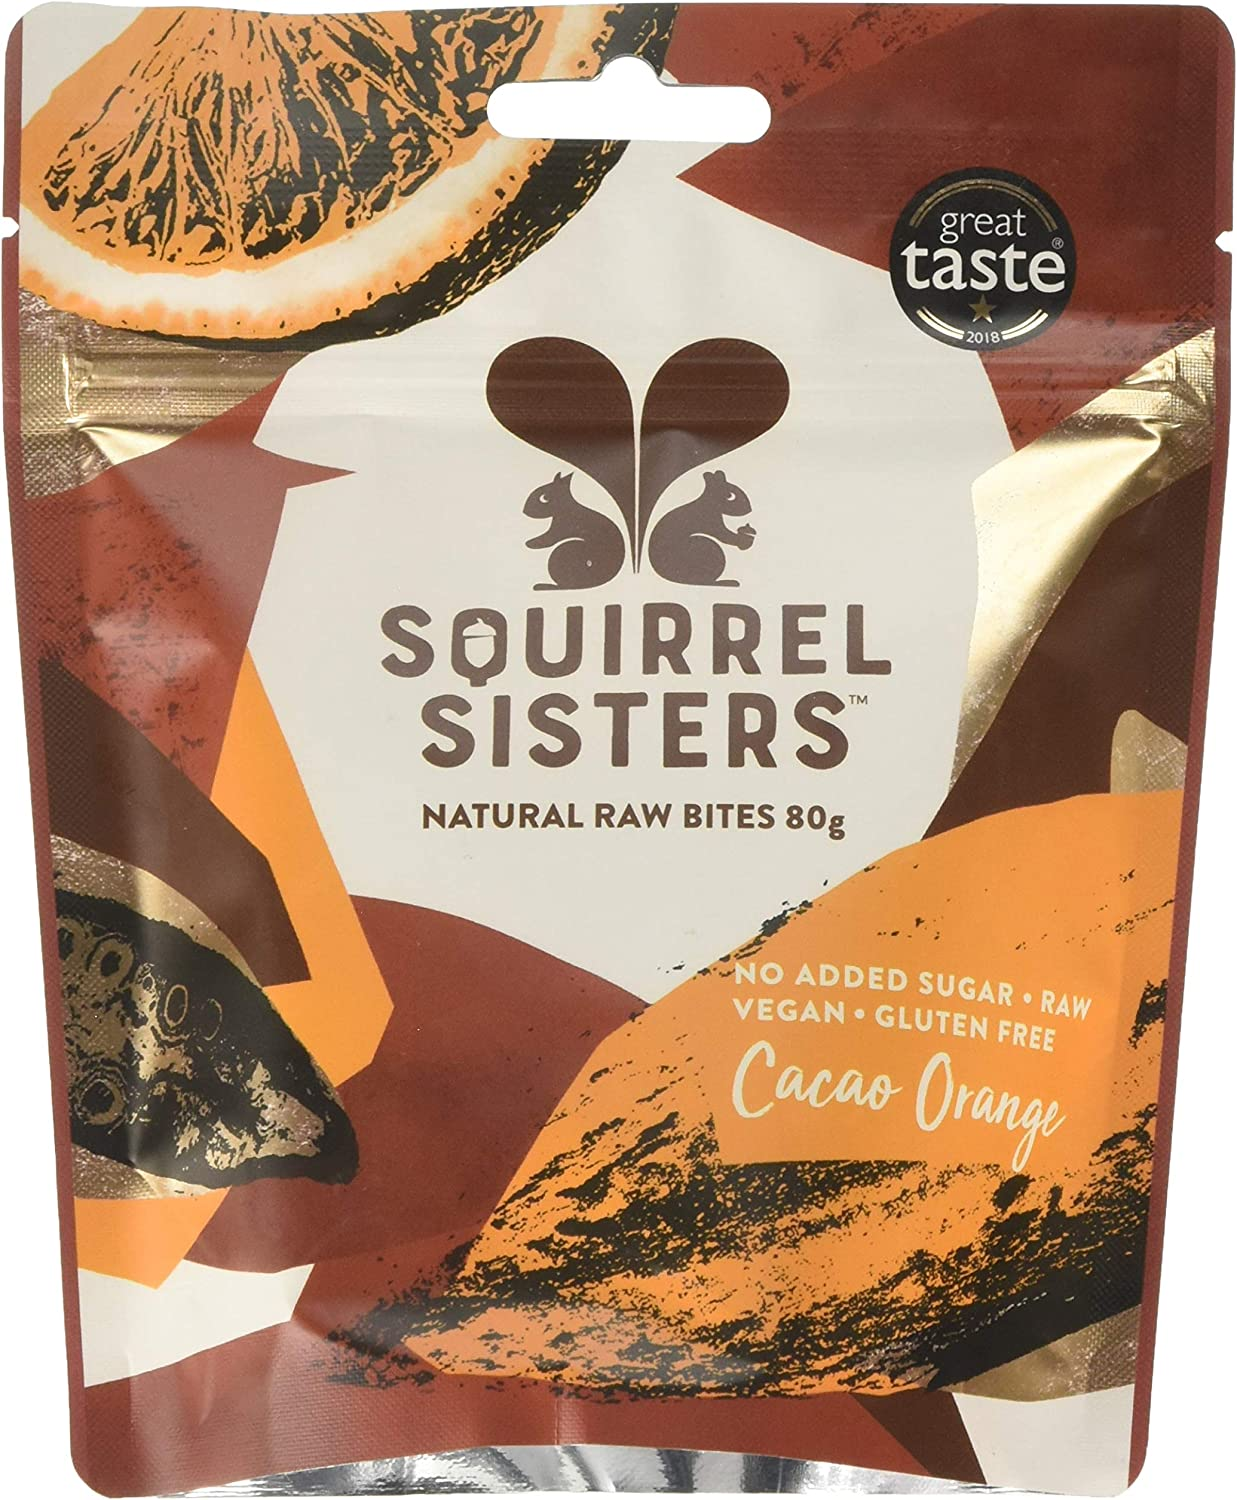 Squirrel Sisters Cacao Orange Natural Raw Bites Share Bag 80g (Pack of 10)